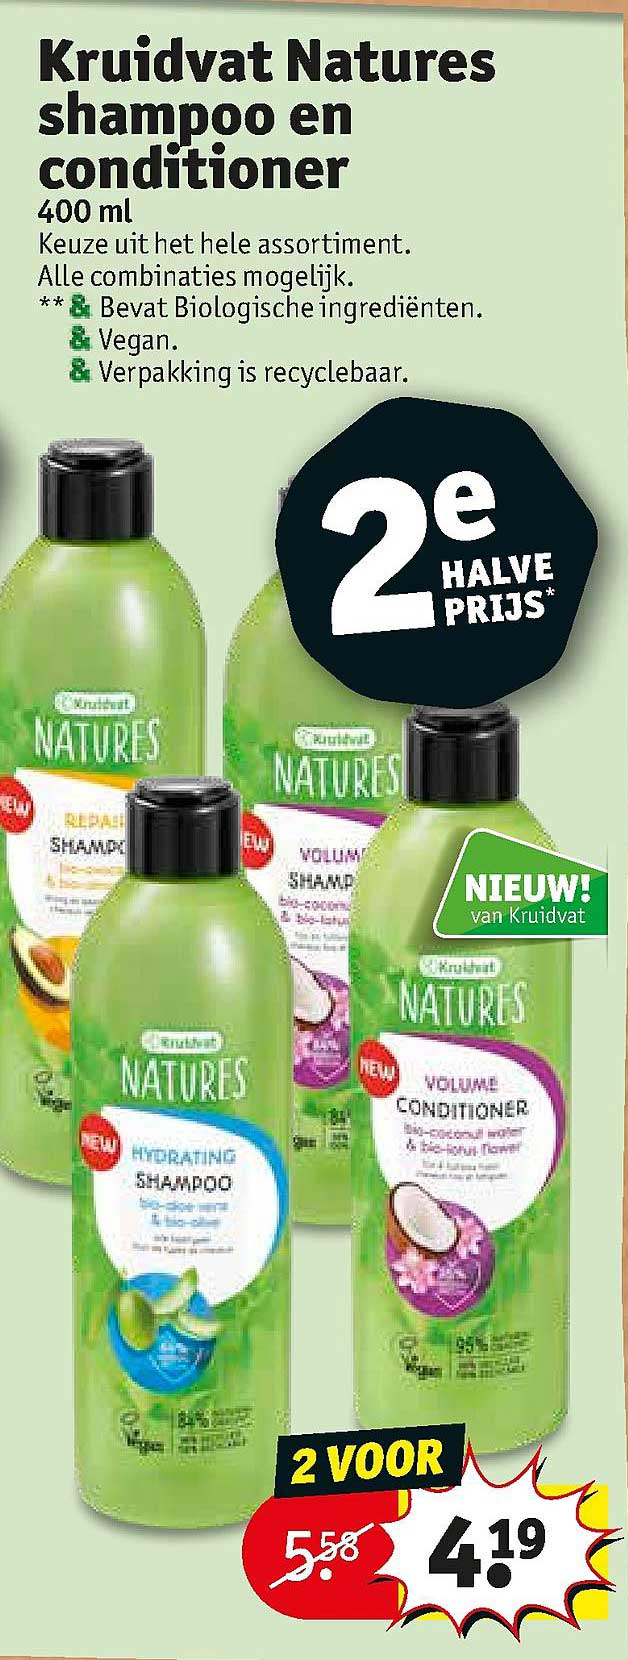 Kruidvat Kruidvat Natures Shampoo En Conditioner